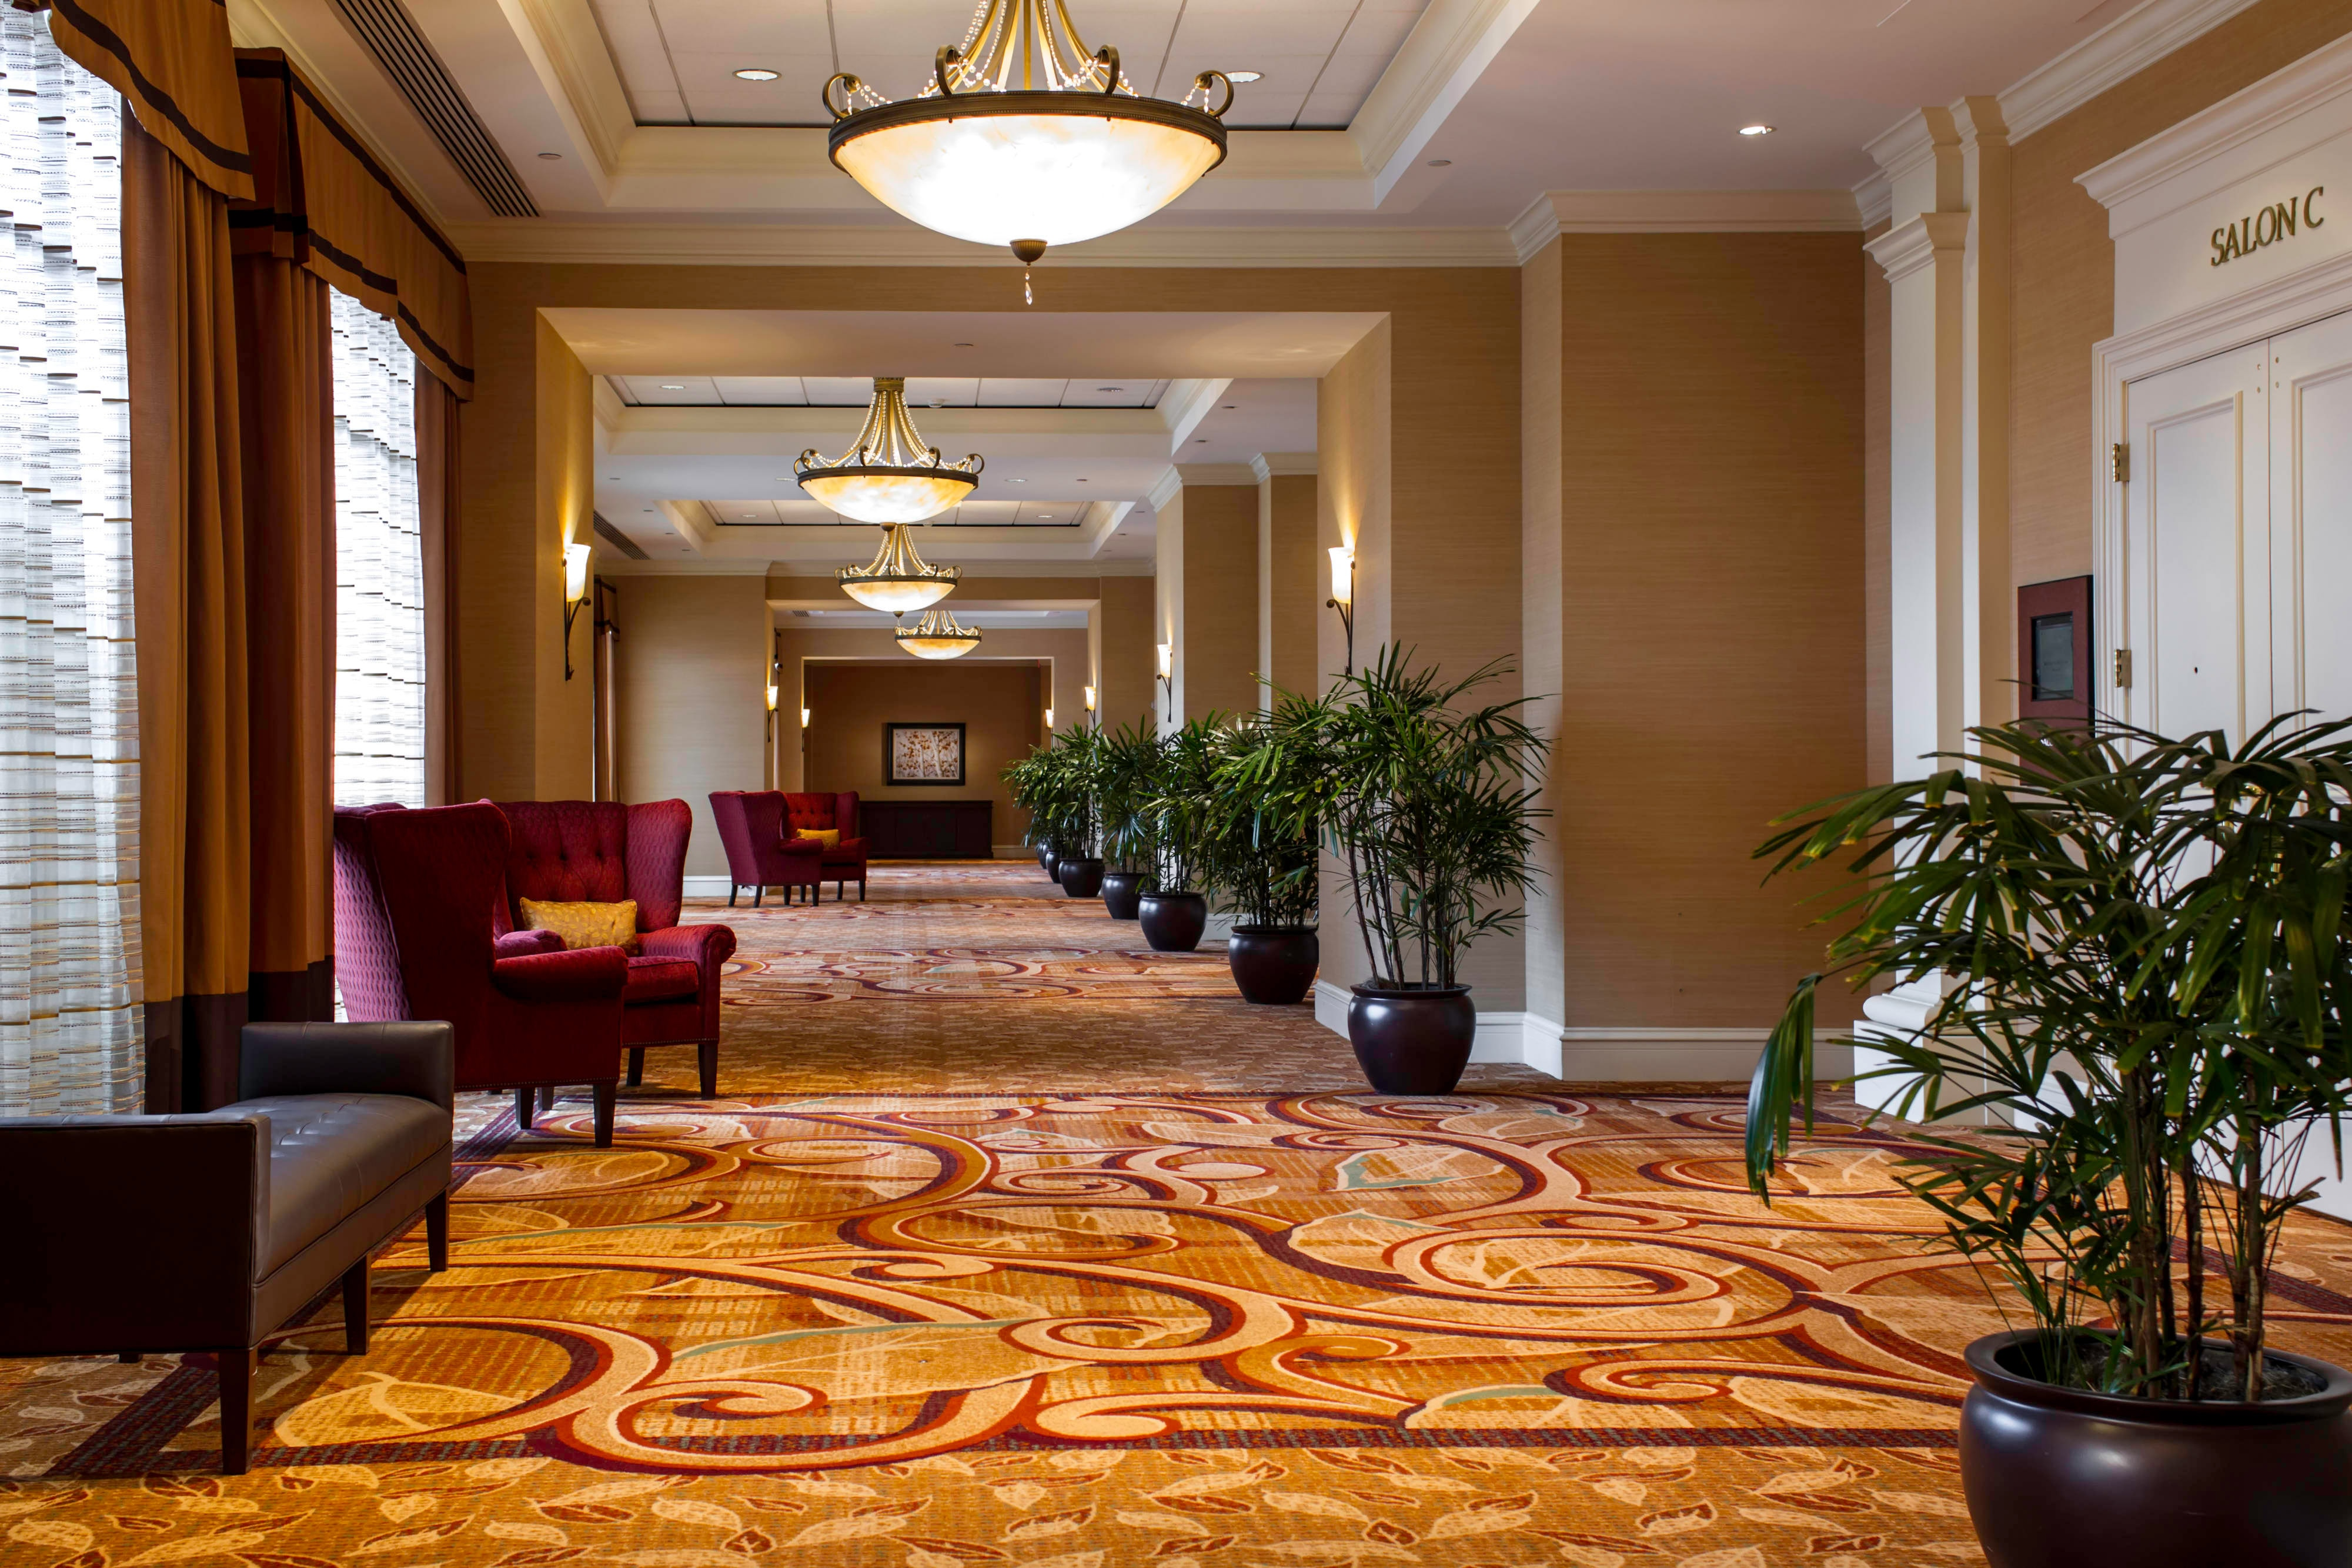 Hotels in Somerset County, NJ